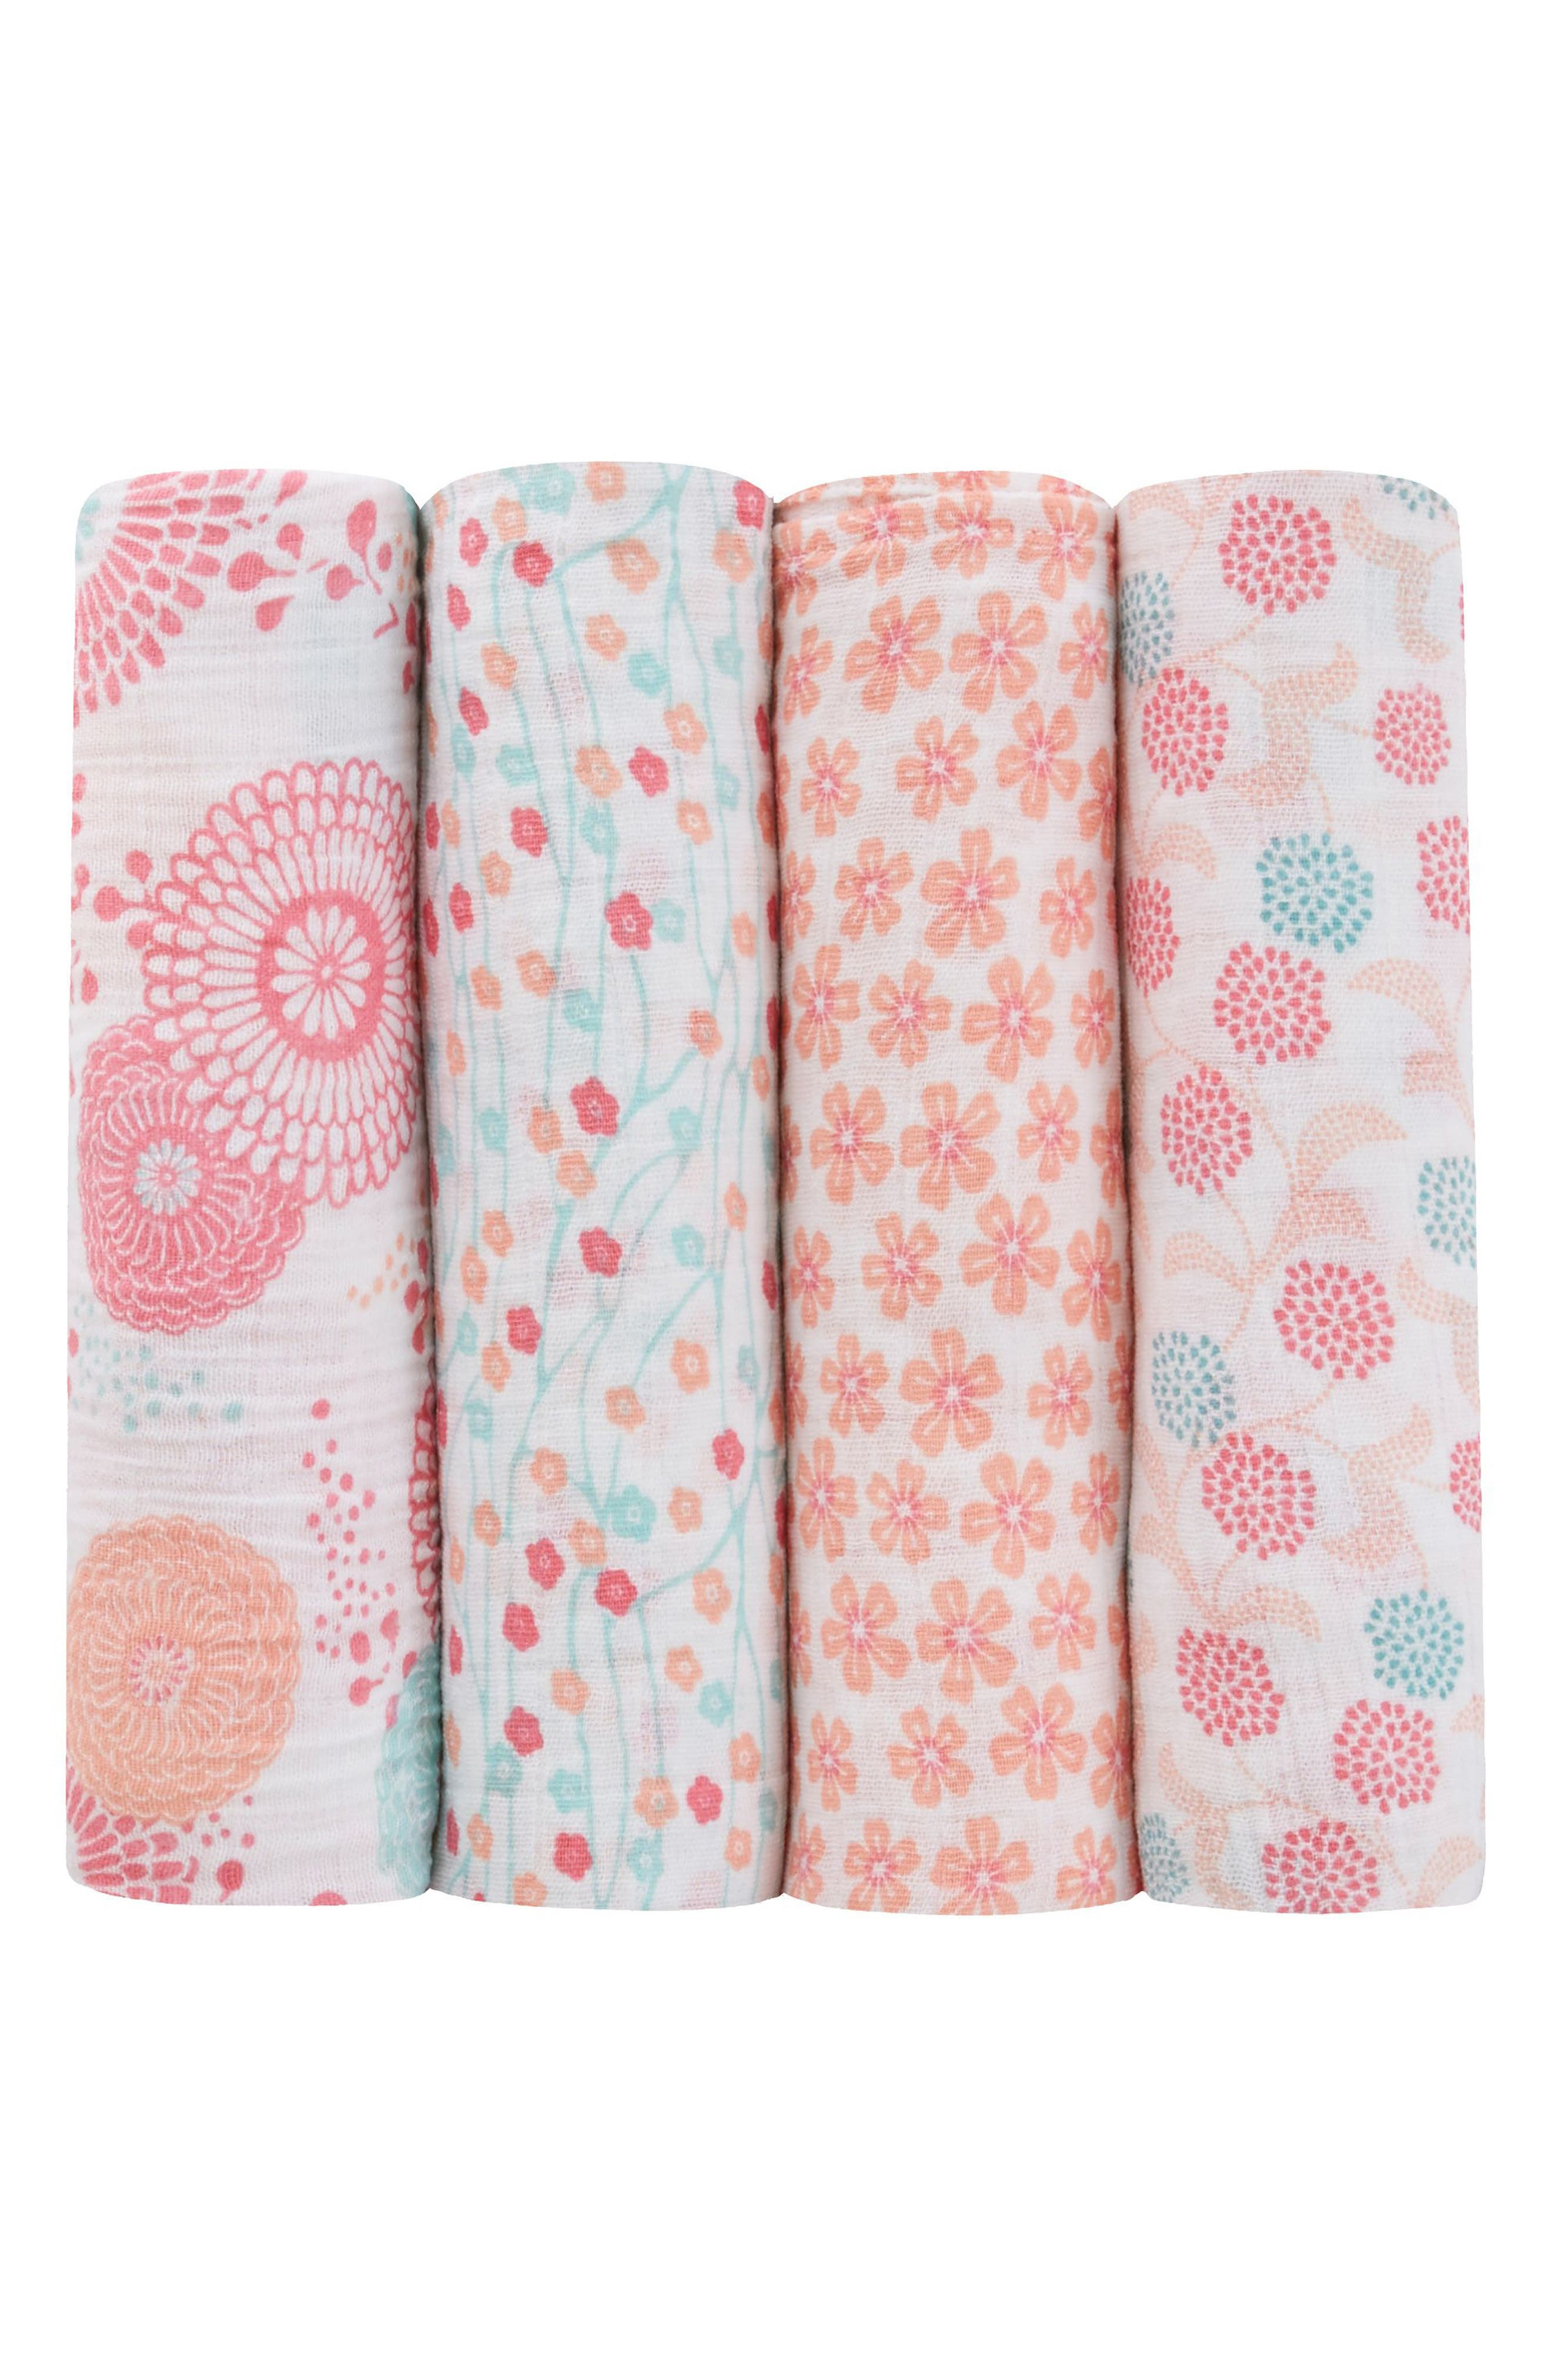 aden + anais x Tea Collection 4-Pack Swaddling Cloths